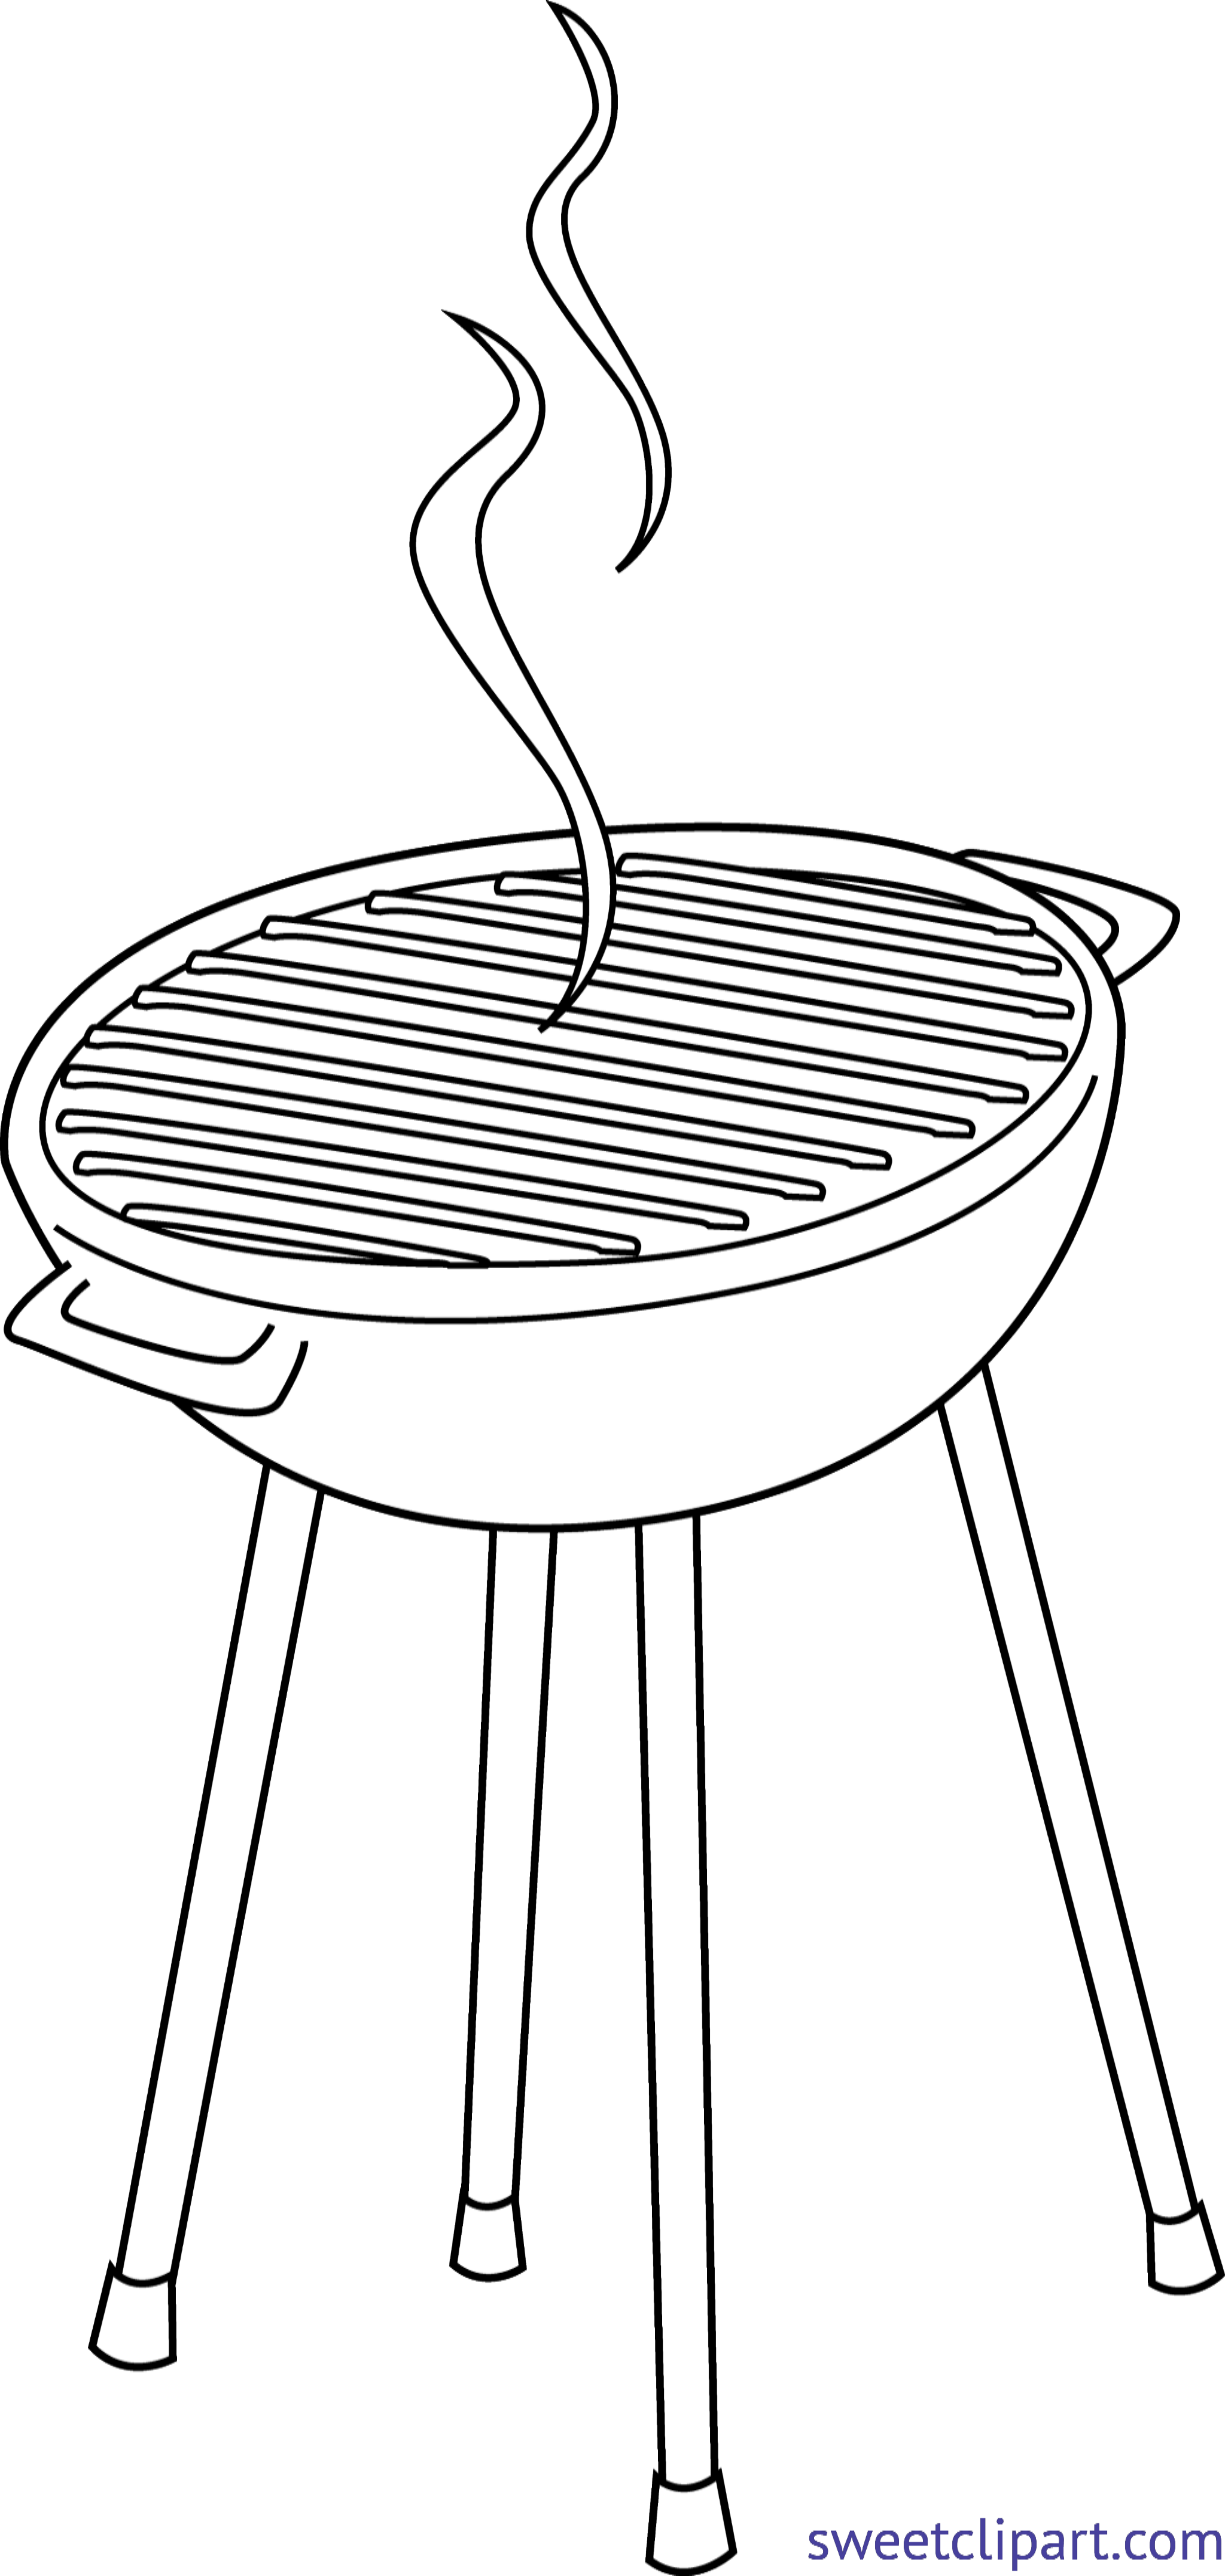 Grill lineart clip art. Drink clipart bbq